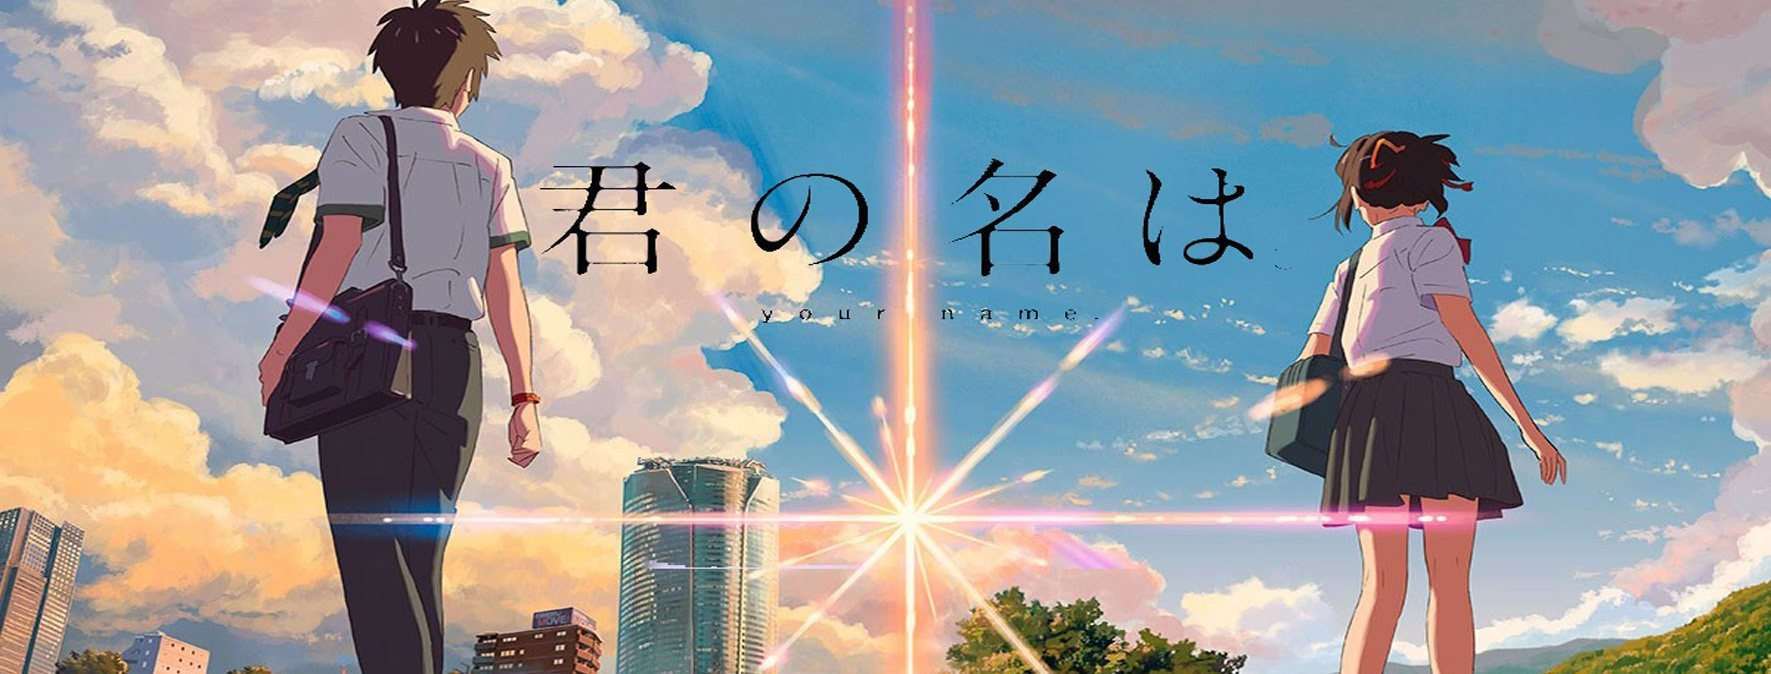 Image Result For Review Film Kimi No Nawa